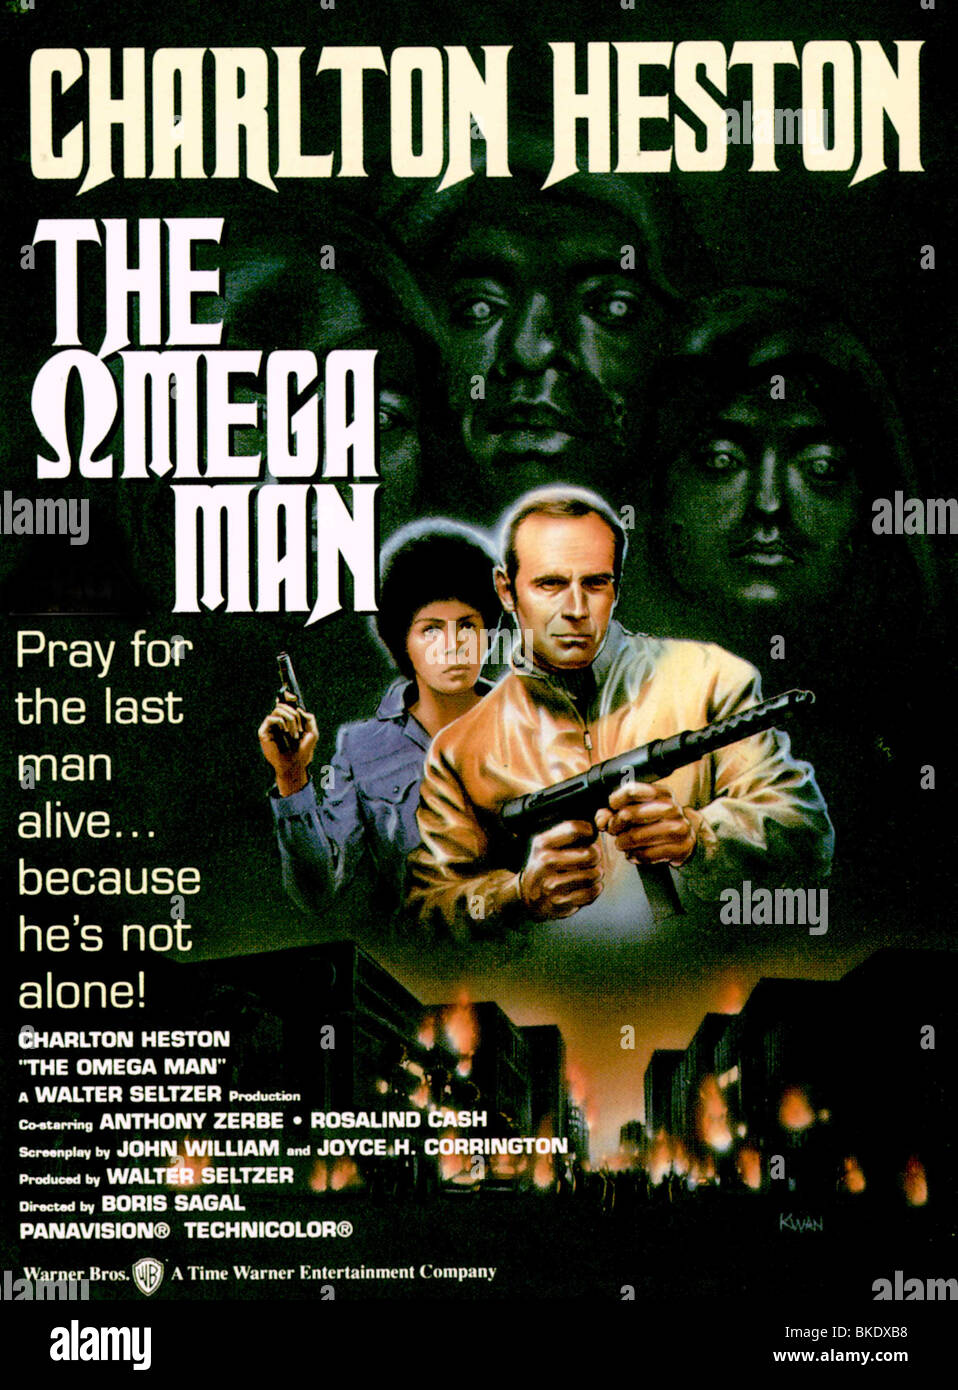 The Omega Man Film High Resolution Stock Photography and Images - Alamy